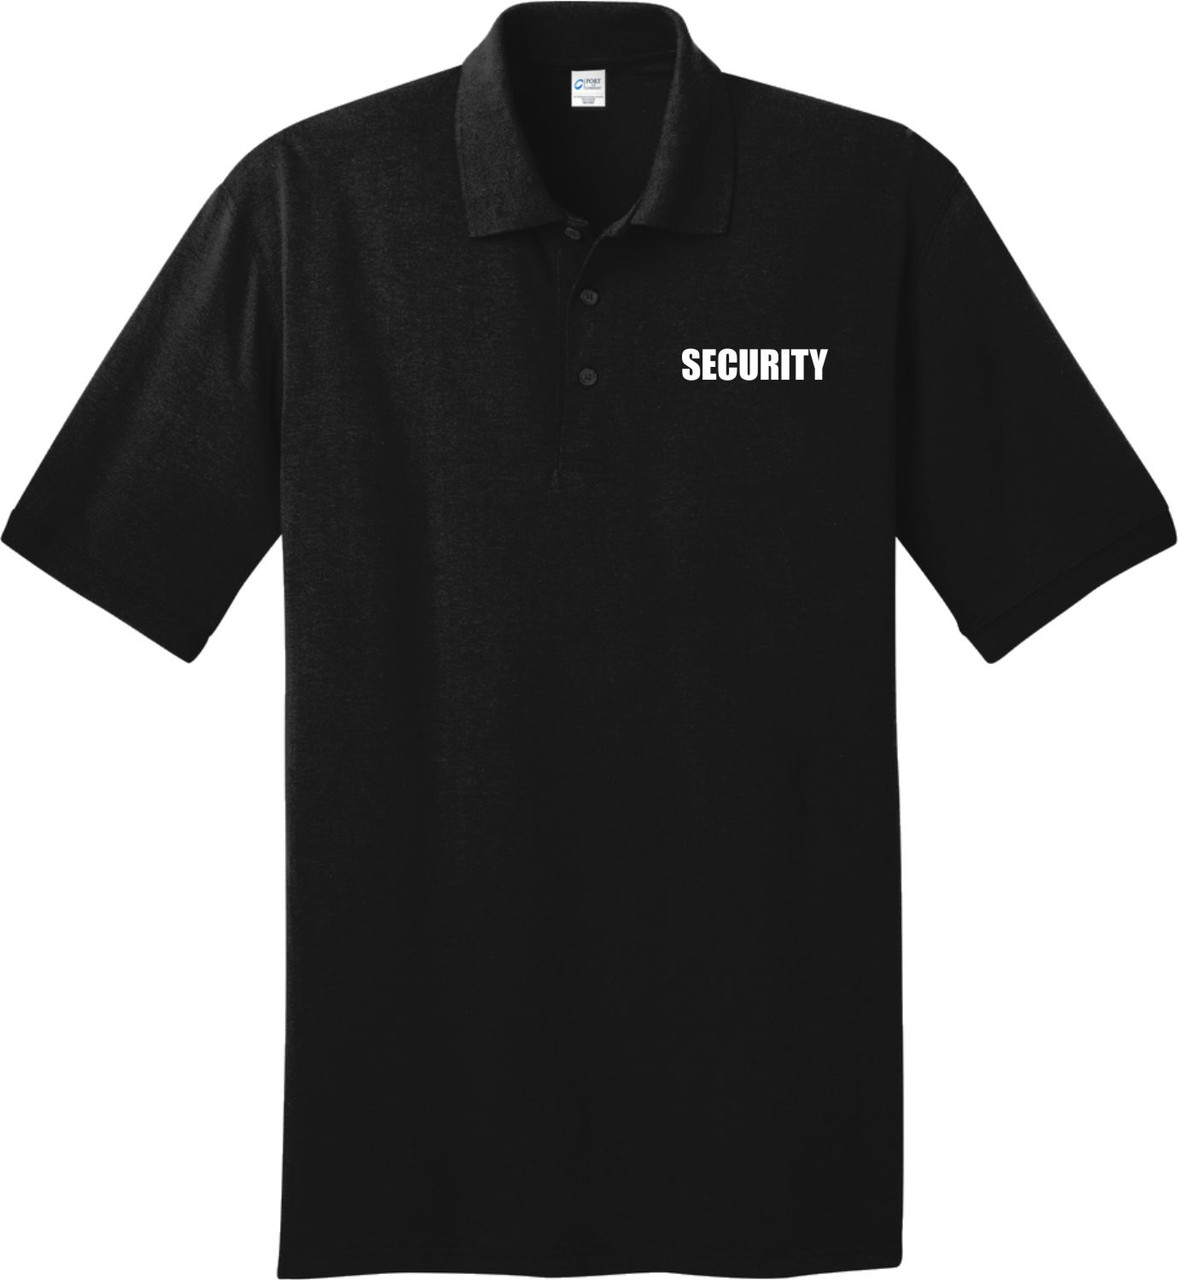 Black Security Uniform Shirt.  Great Polo Shirt for your Security Guards.